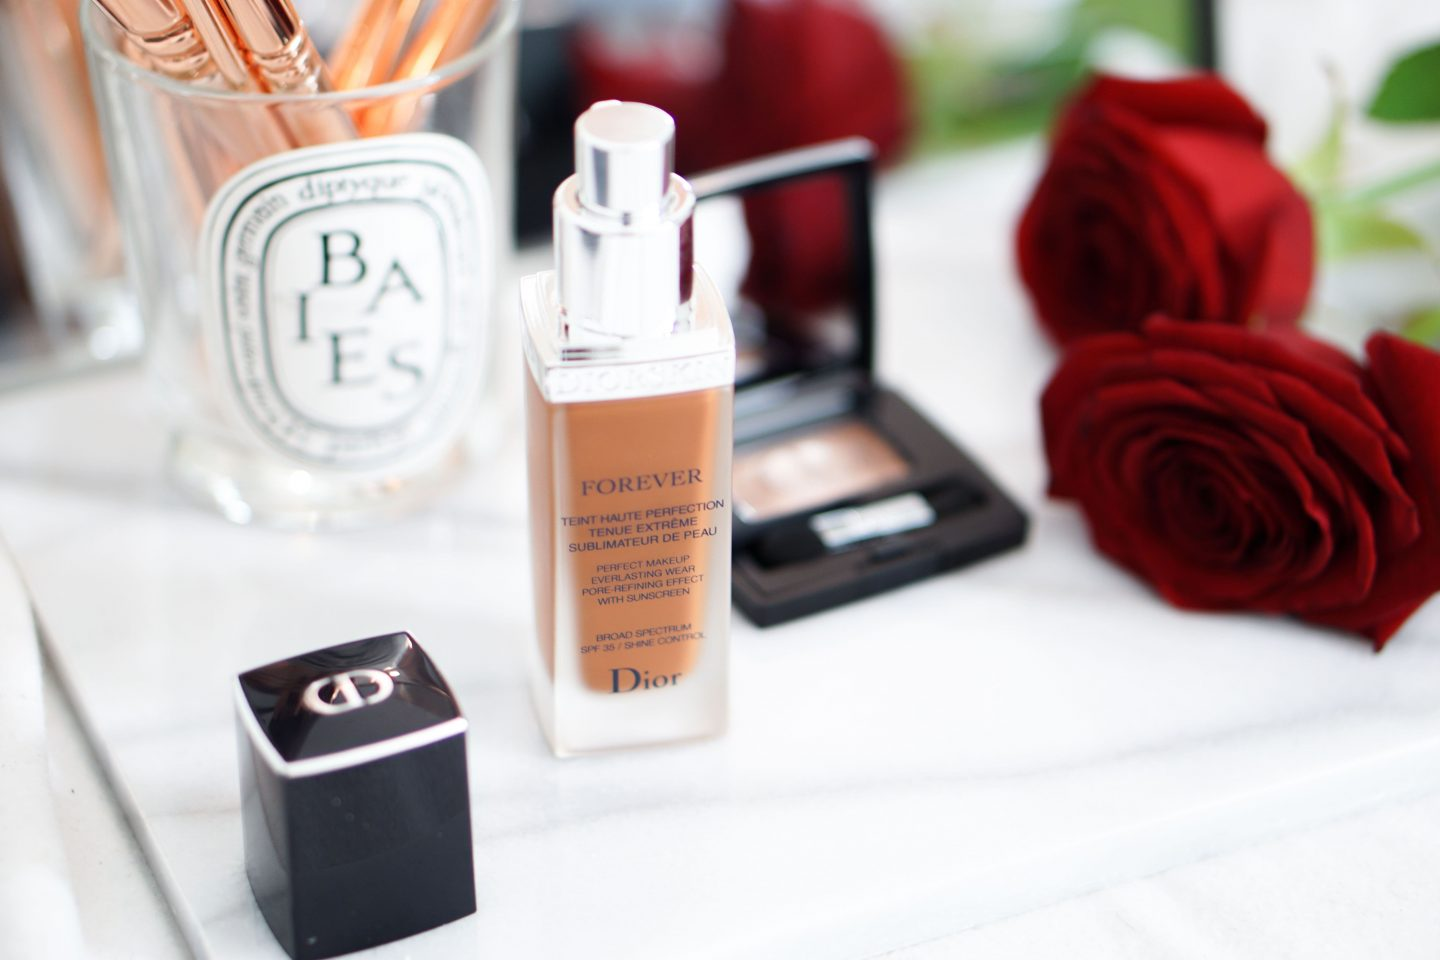 Diorskin Forever Foundation by Dior 1 - Style and the Sass